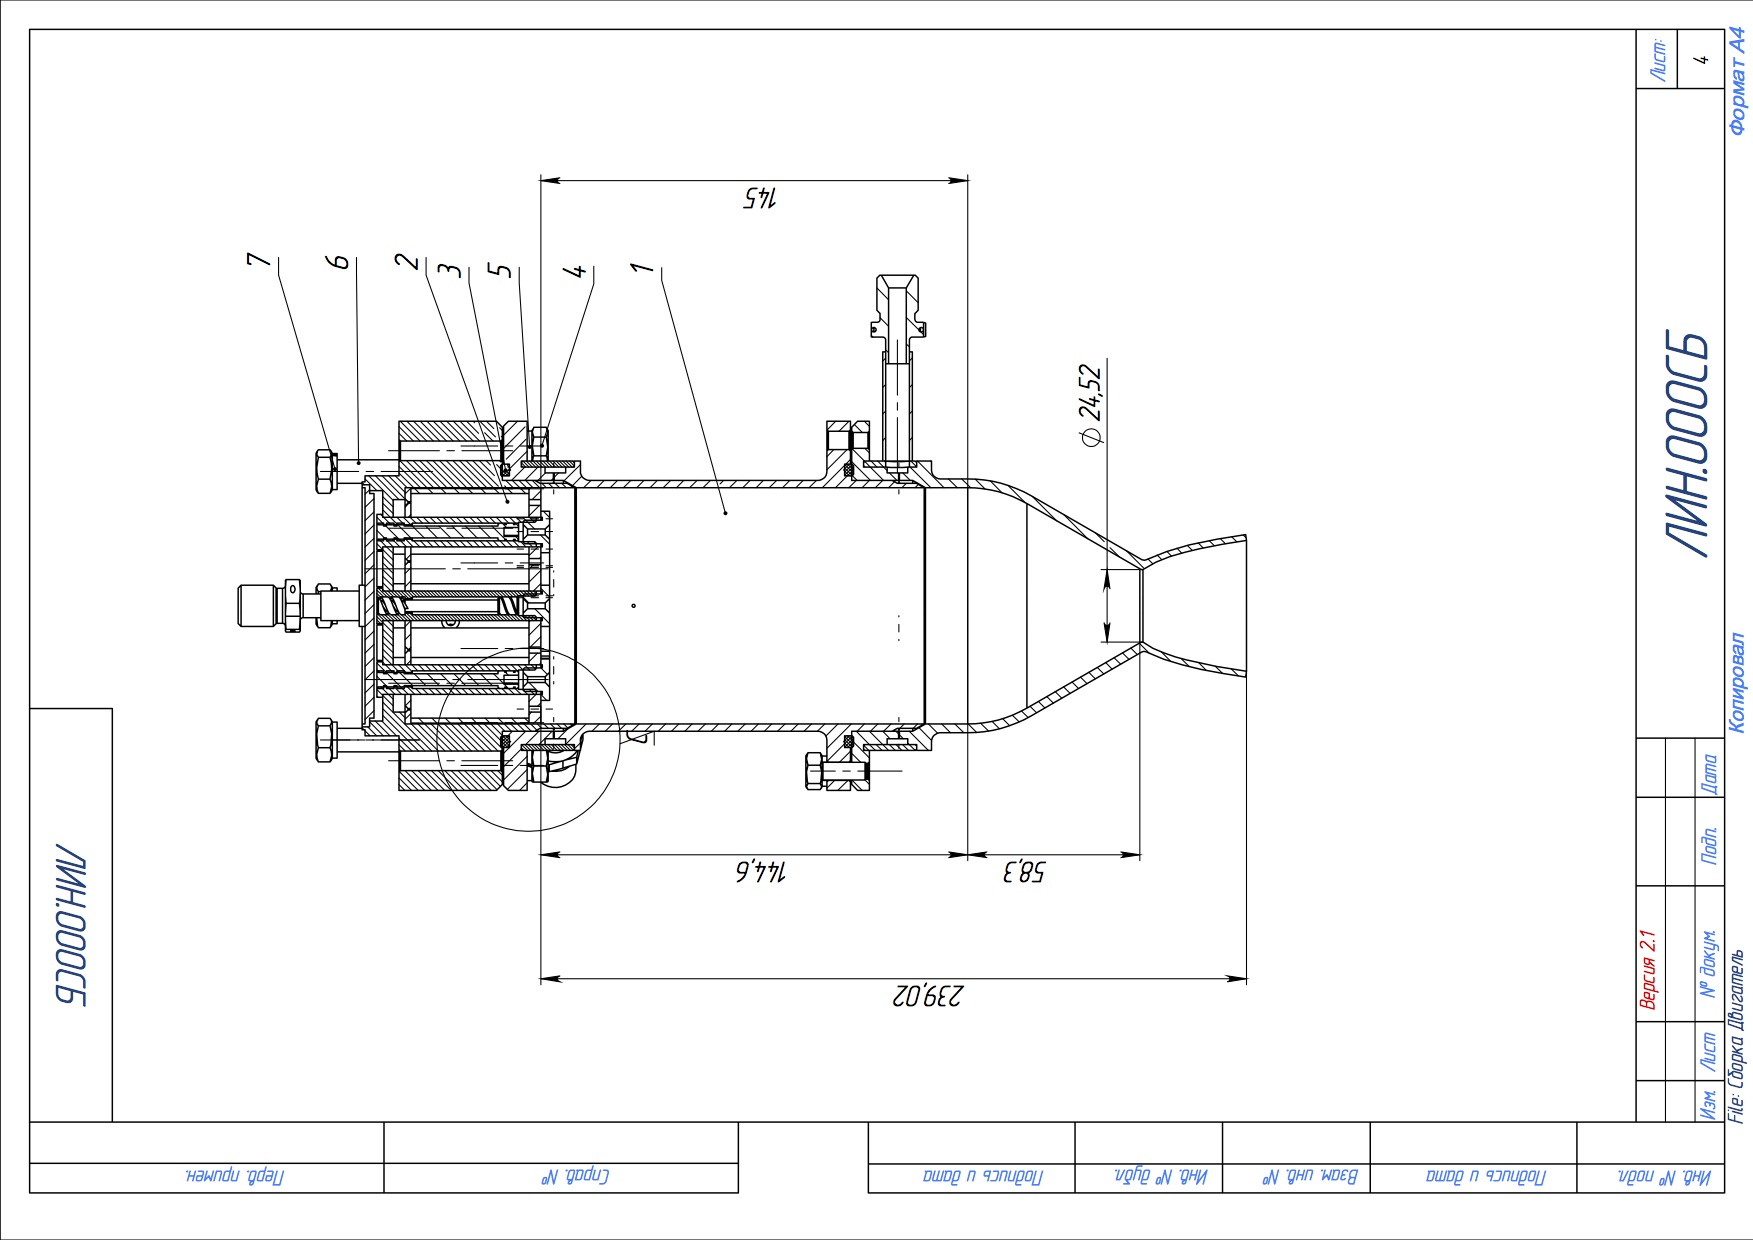 News Rocket Engine With A Thrust Of 100 Kgf Is Assembled And Ready Missile Diagram We Sent Finished Drawings To Multiple Contractors Including Artmech Our Primary Metalworking Partner All Chamber Related Work Was Duplicated